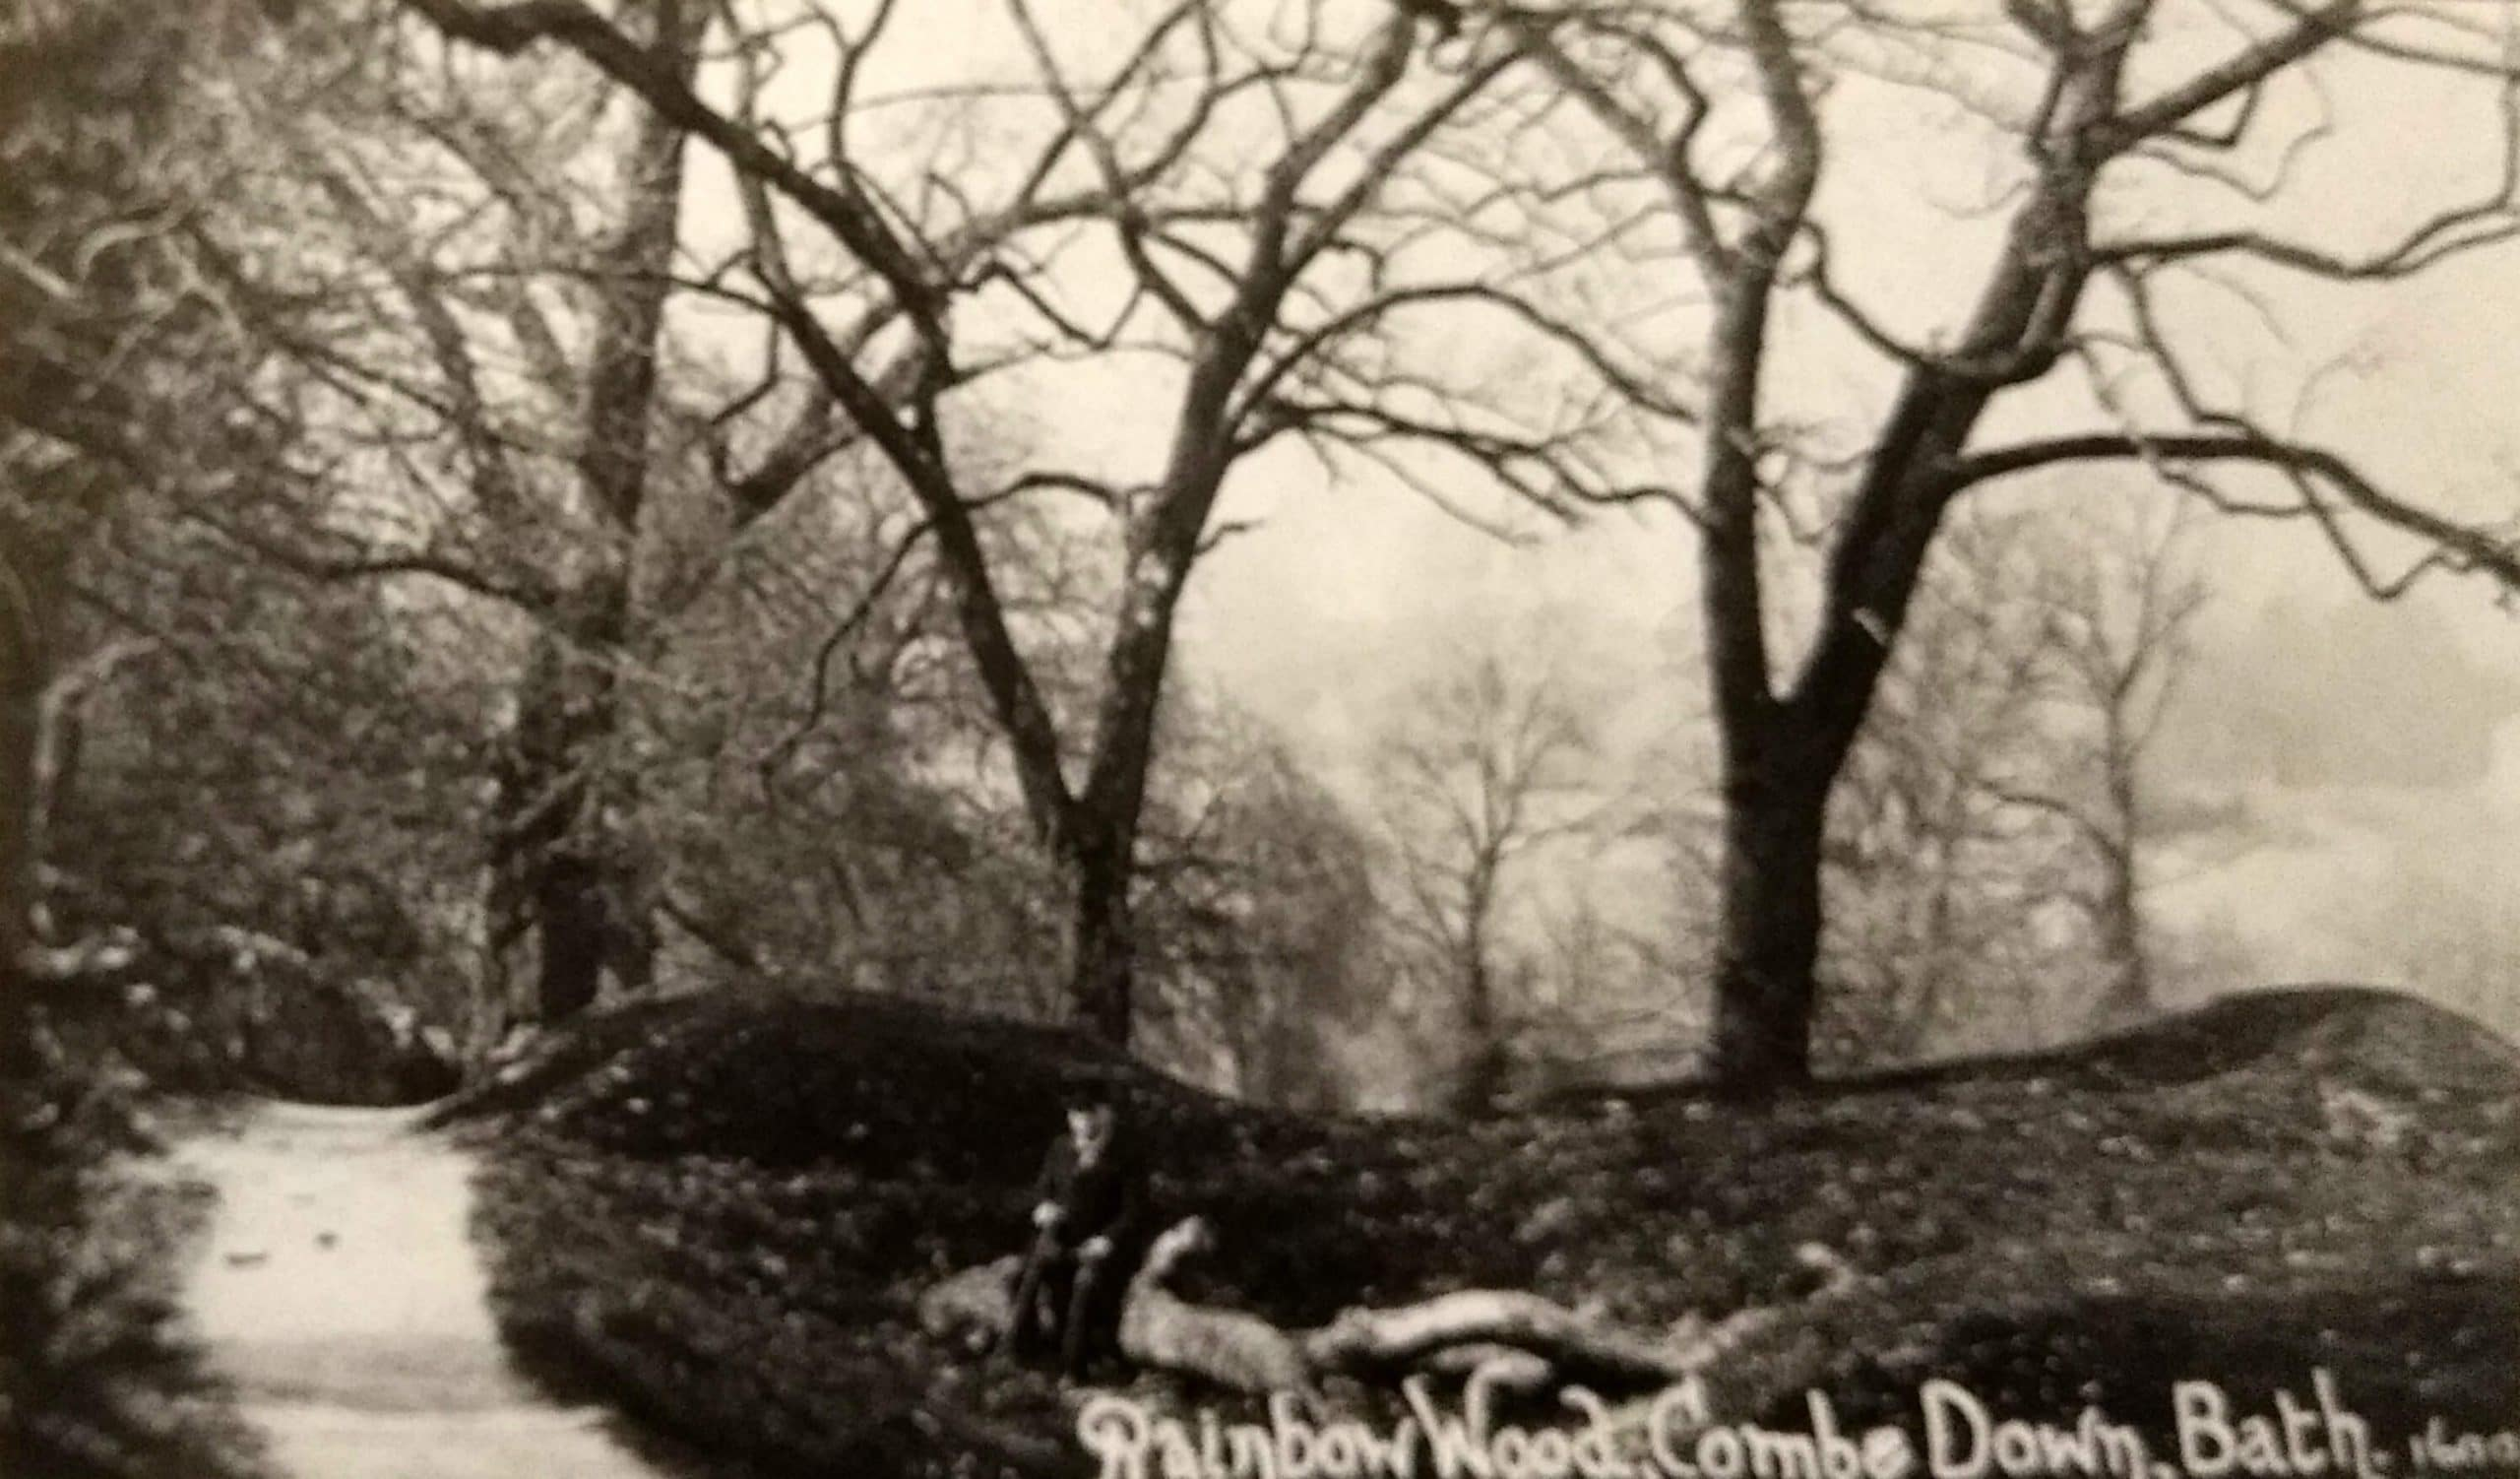 Rainbow Wood, Combe Down about 1915